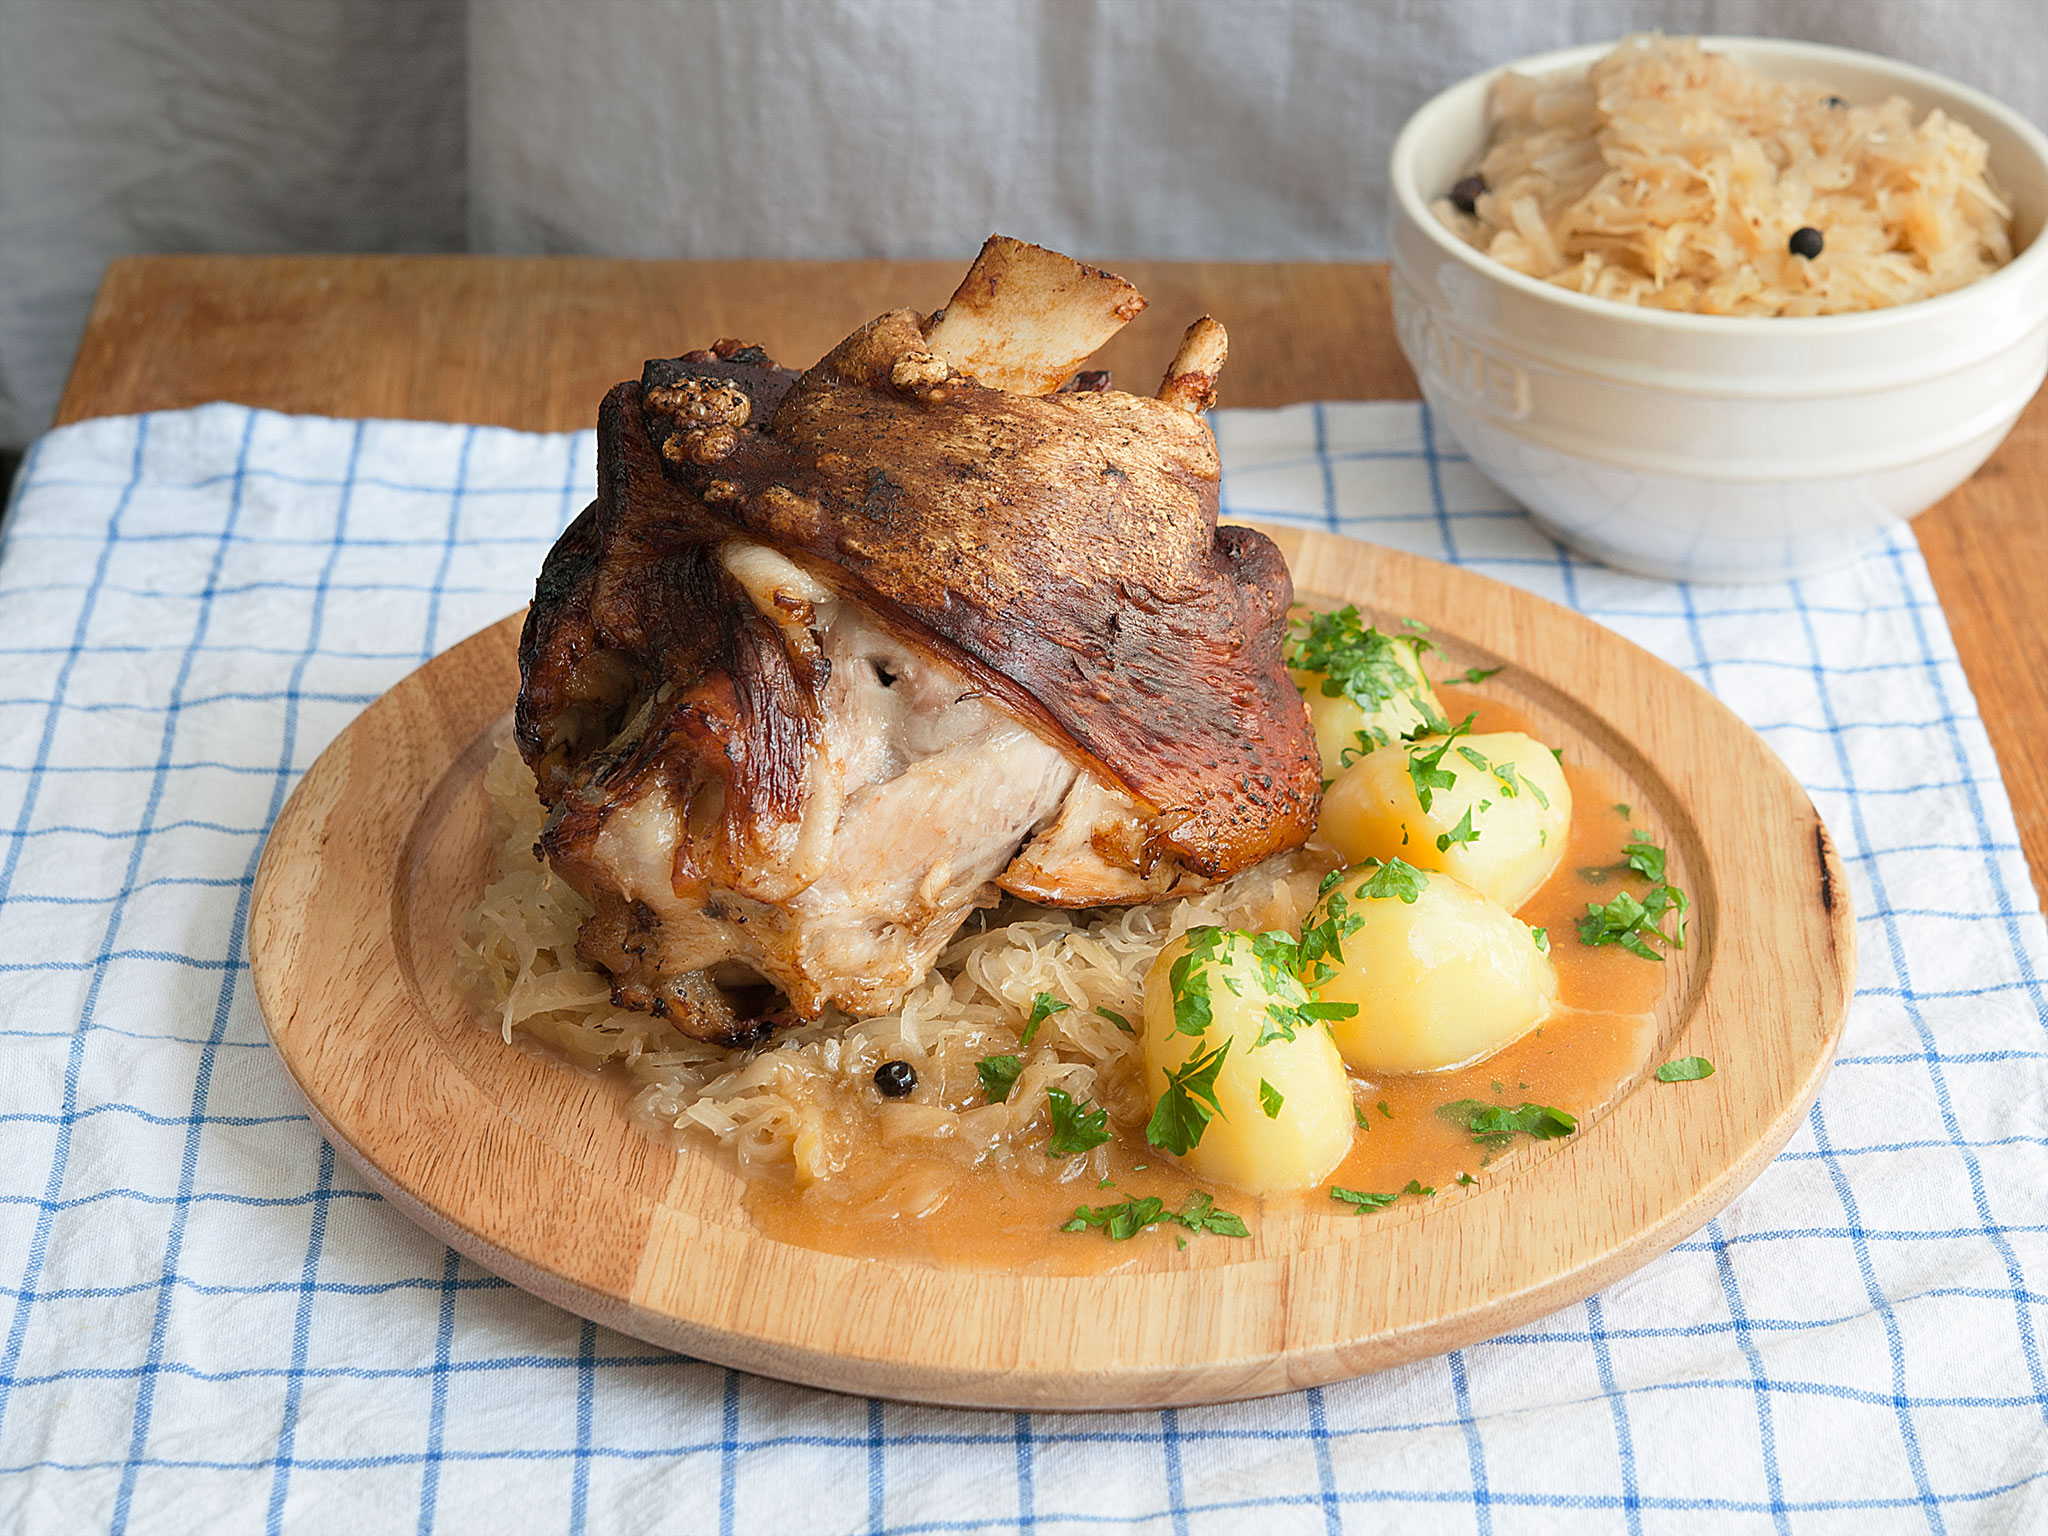 schweinshaxe mit sauerkraut und kartoffeln rezept kitchen stories. Black Bedroom Furniture Sets. Home Design Ideas